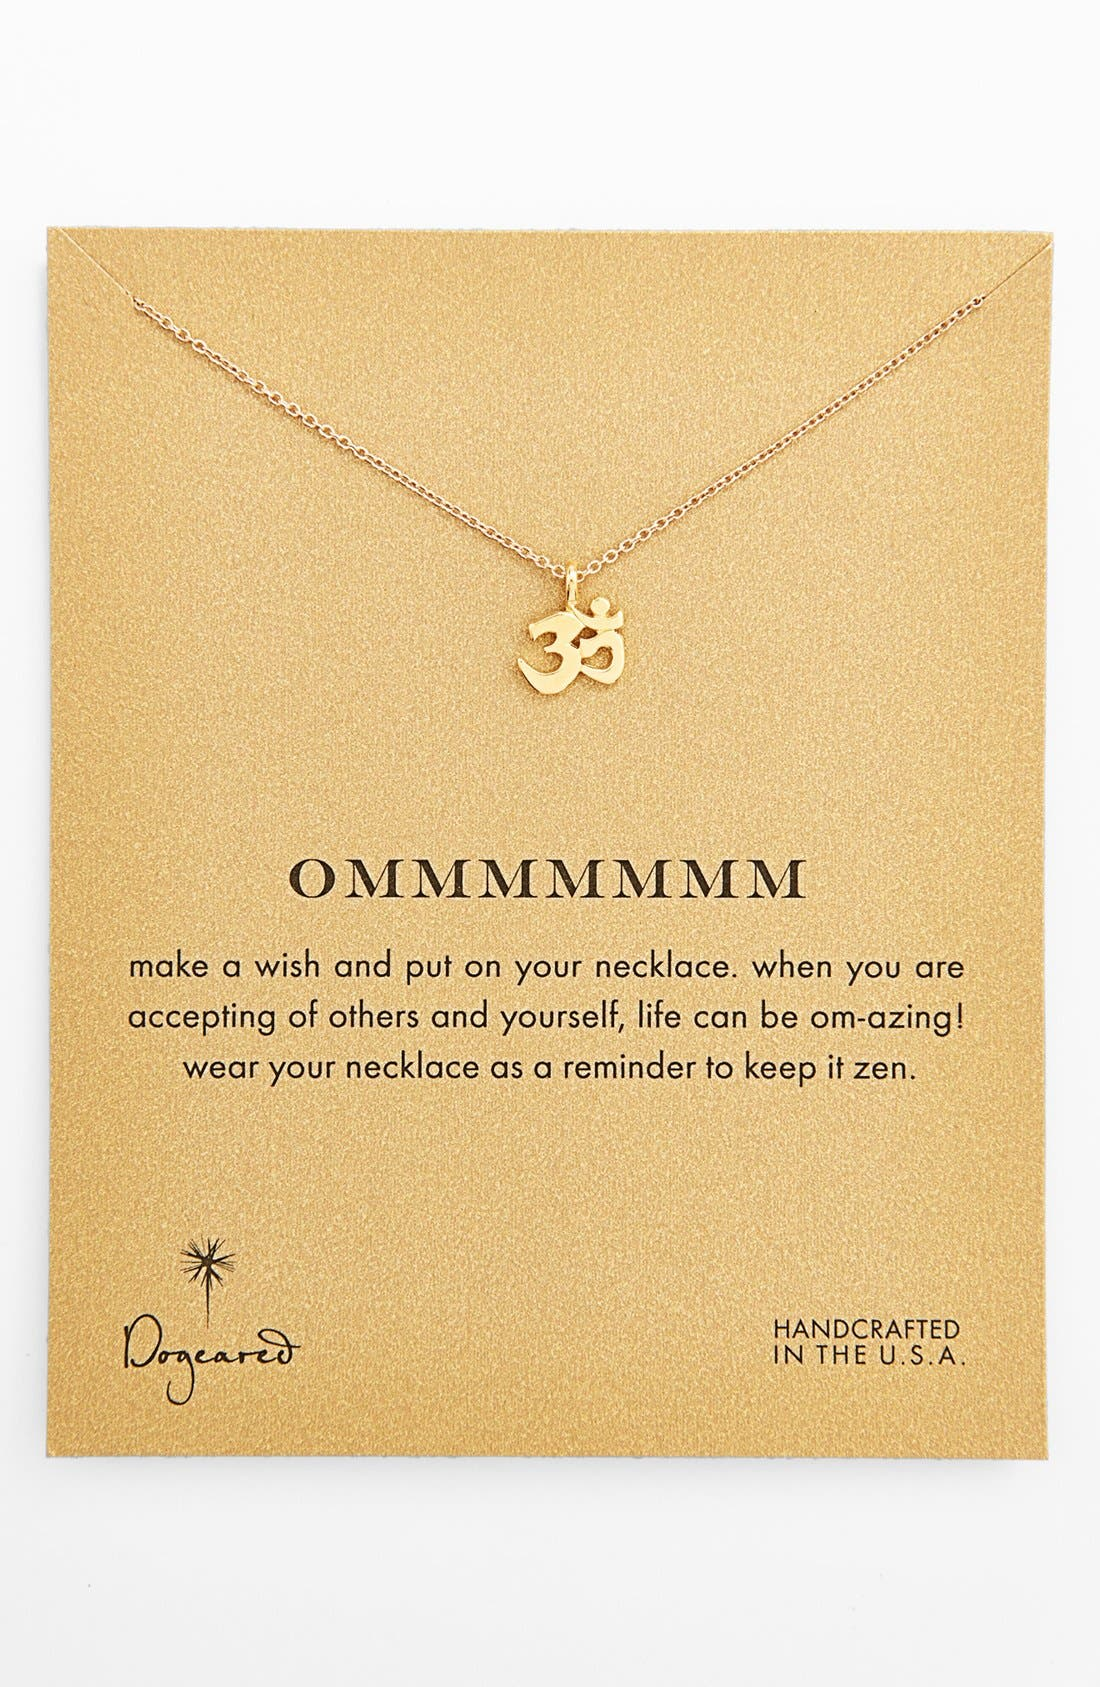 Alternate Image 1 Selected - Dogeared 'Reminder - Ommmmmmm' Boxed Pendant Necklace